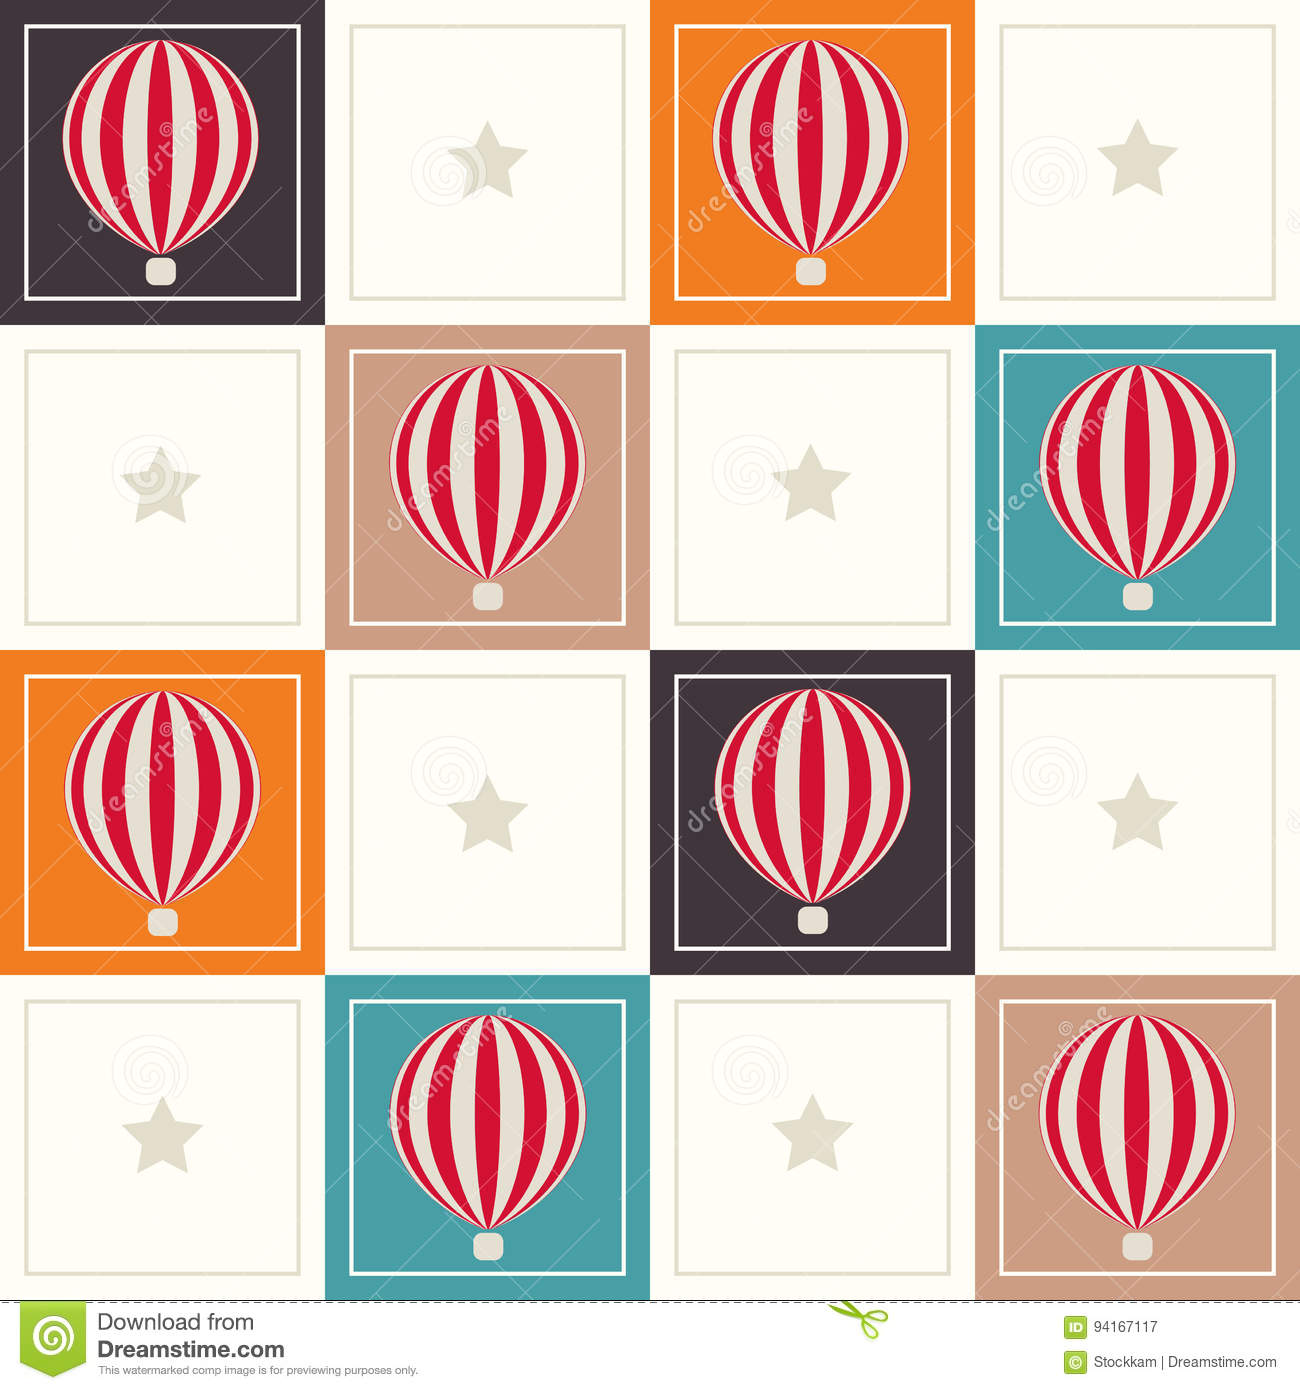 Abstract Geometric Pattern Background With Colorful Squares, Delicate Hot Air Balloons And Stars